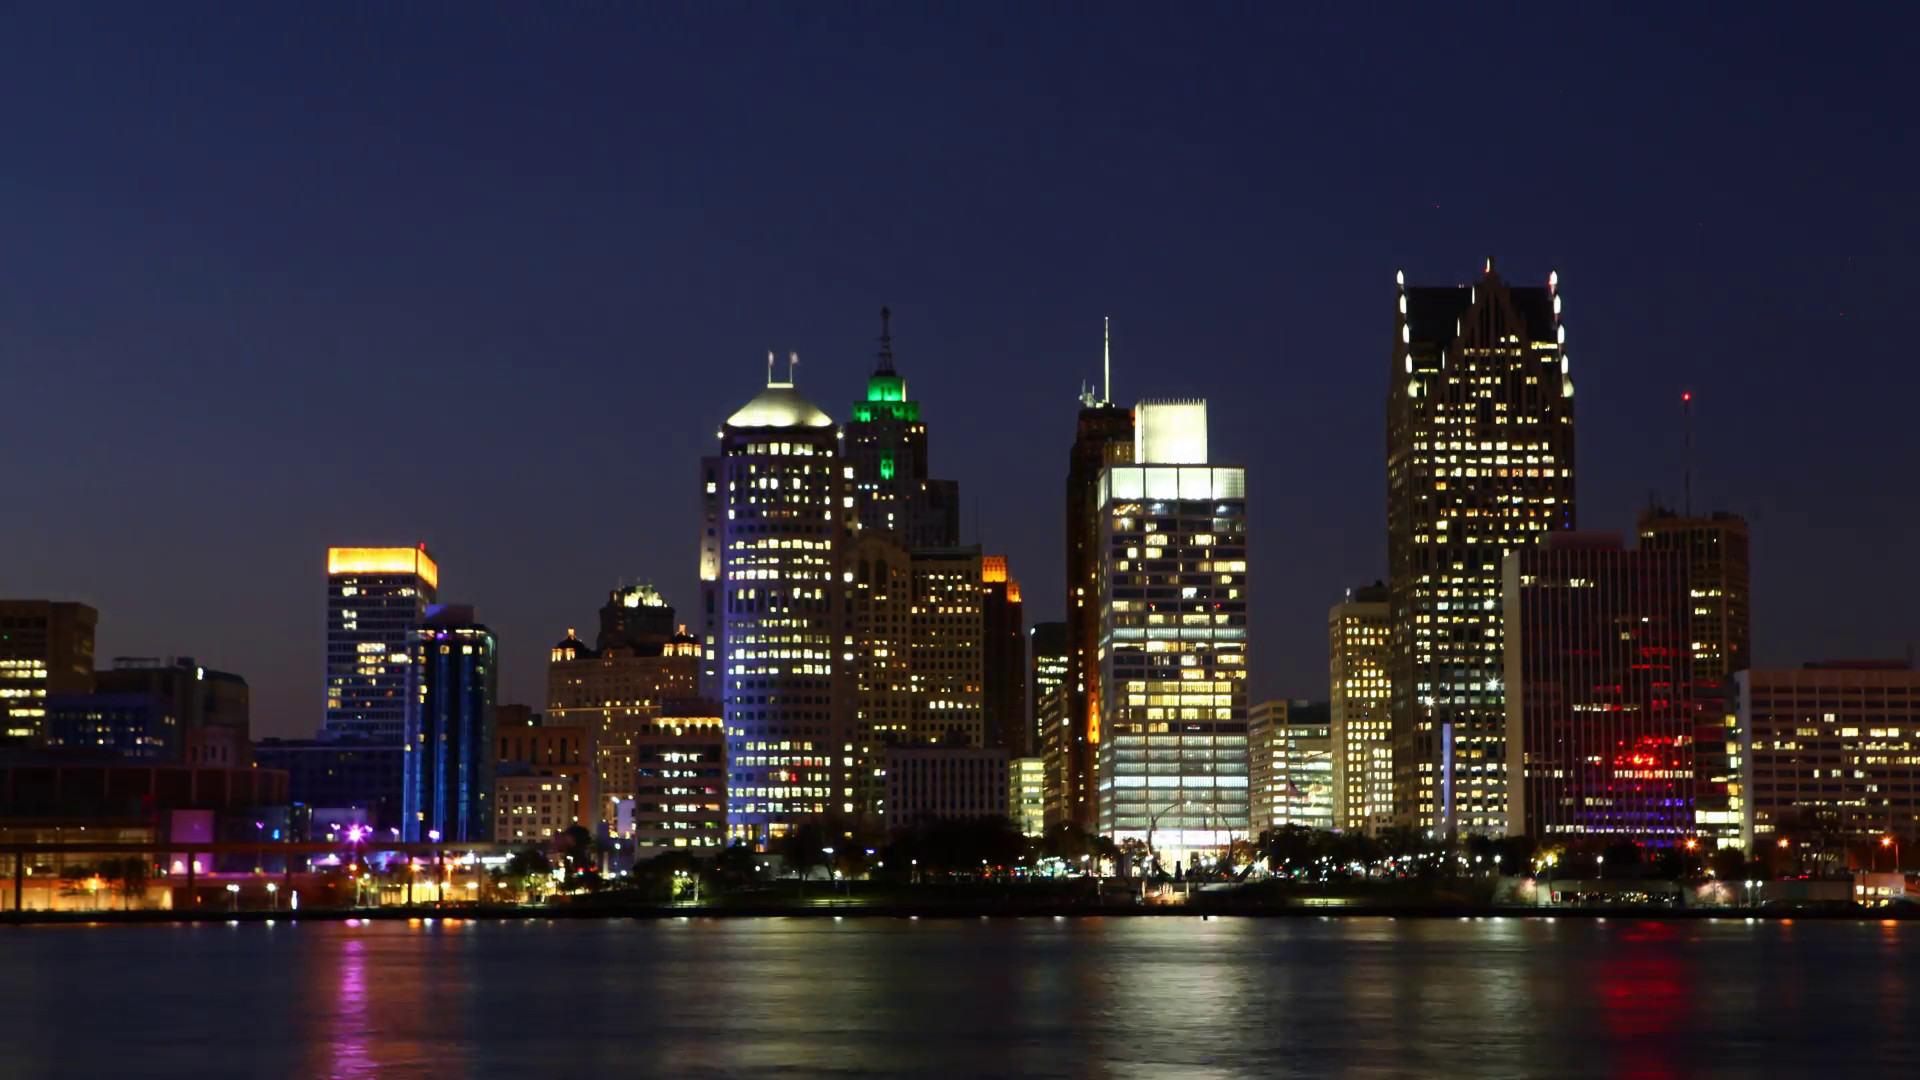 Res: 1920x1080, A Timelapse of the Detroit skyline at night across river Stock Video  Footage - Videoblocks